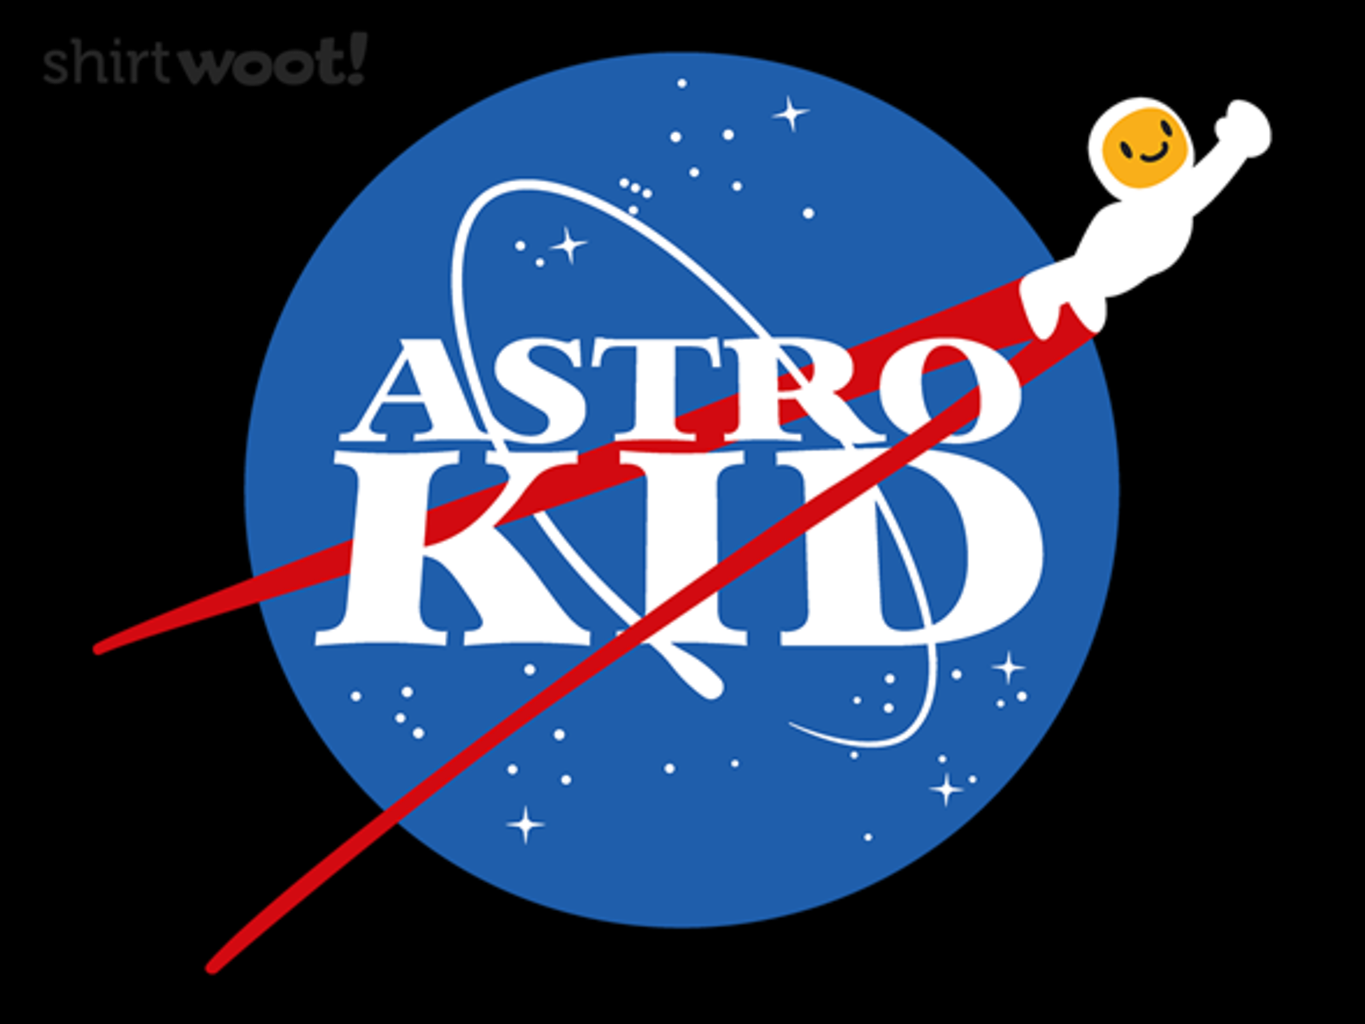 Woot!: Astrokid - $15.00 + Free shipping